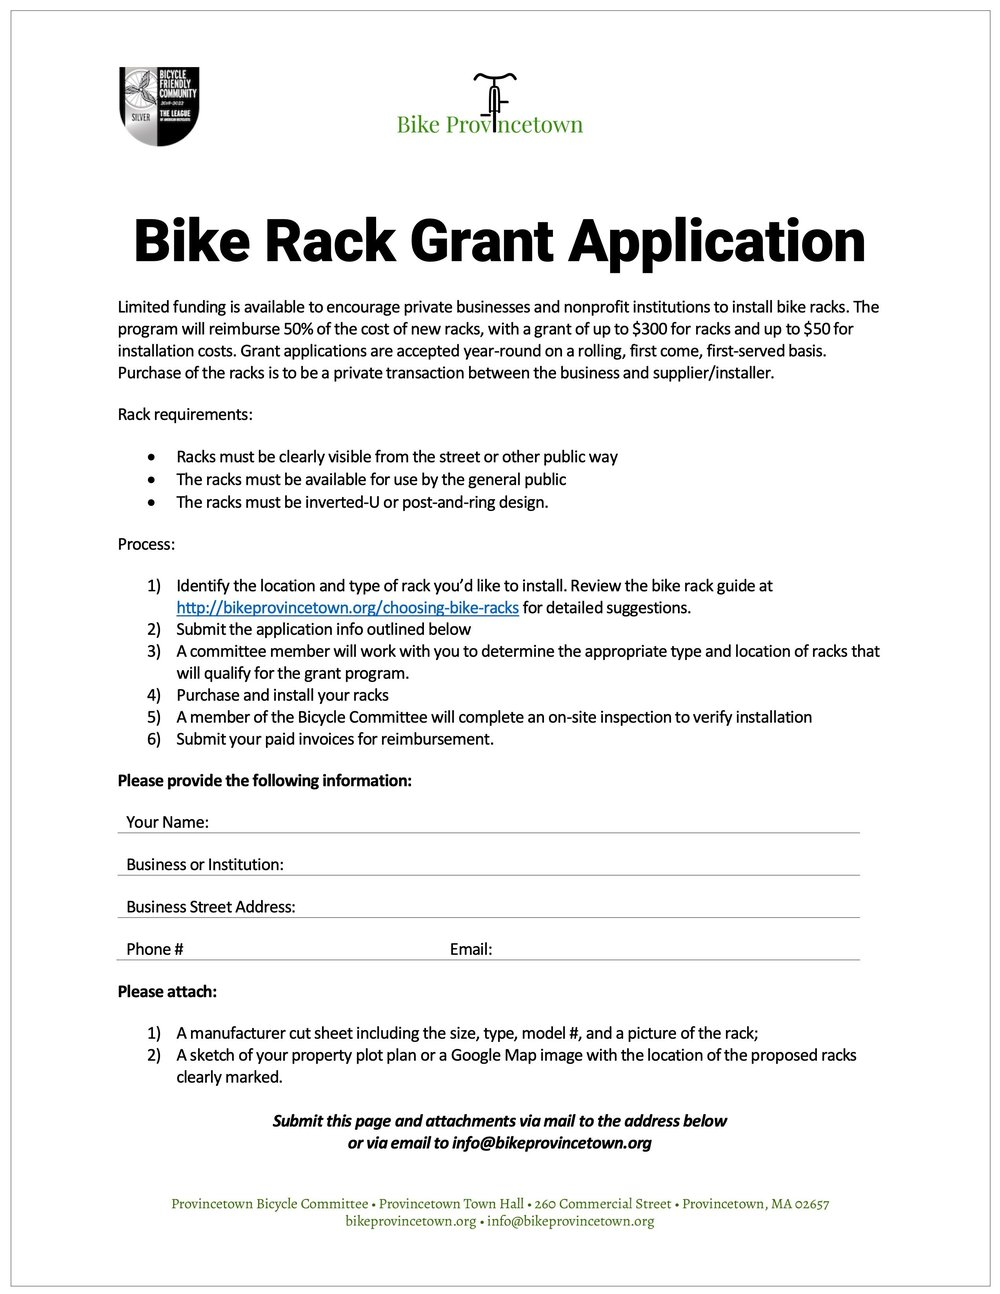 Bike Rack Grant Application (PDF) »